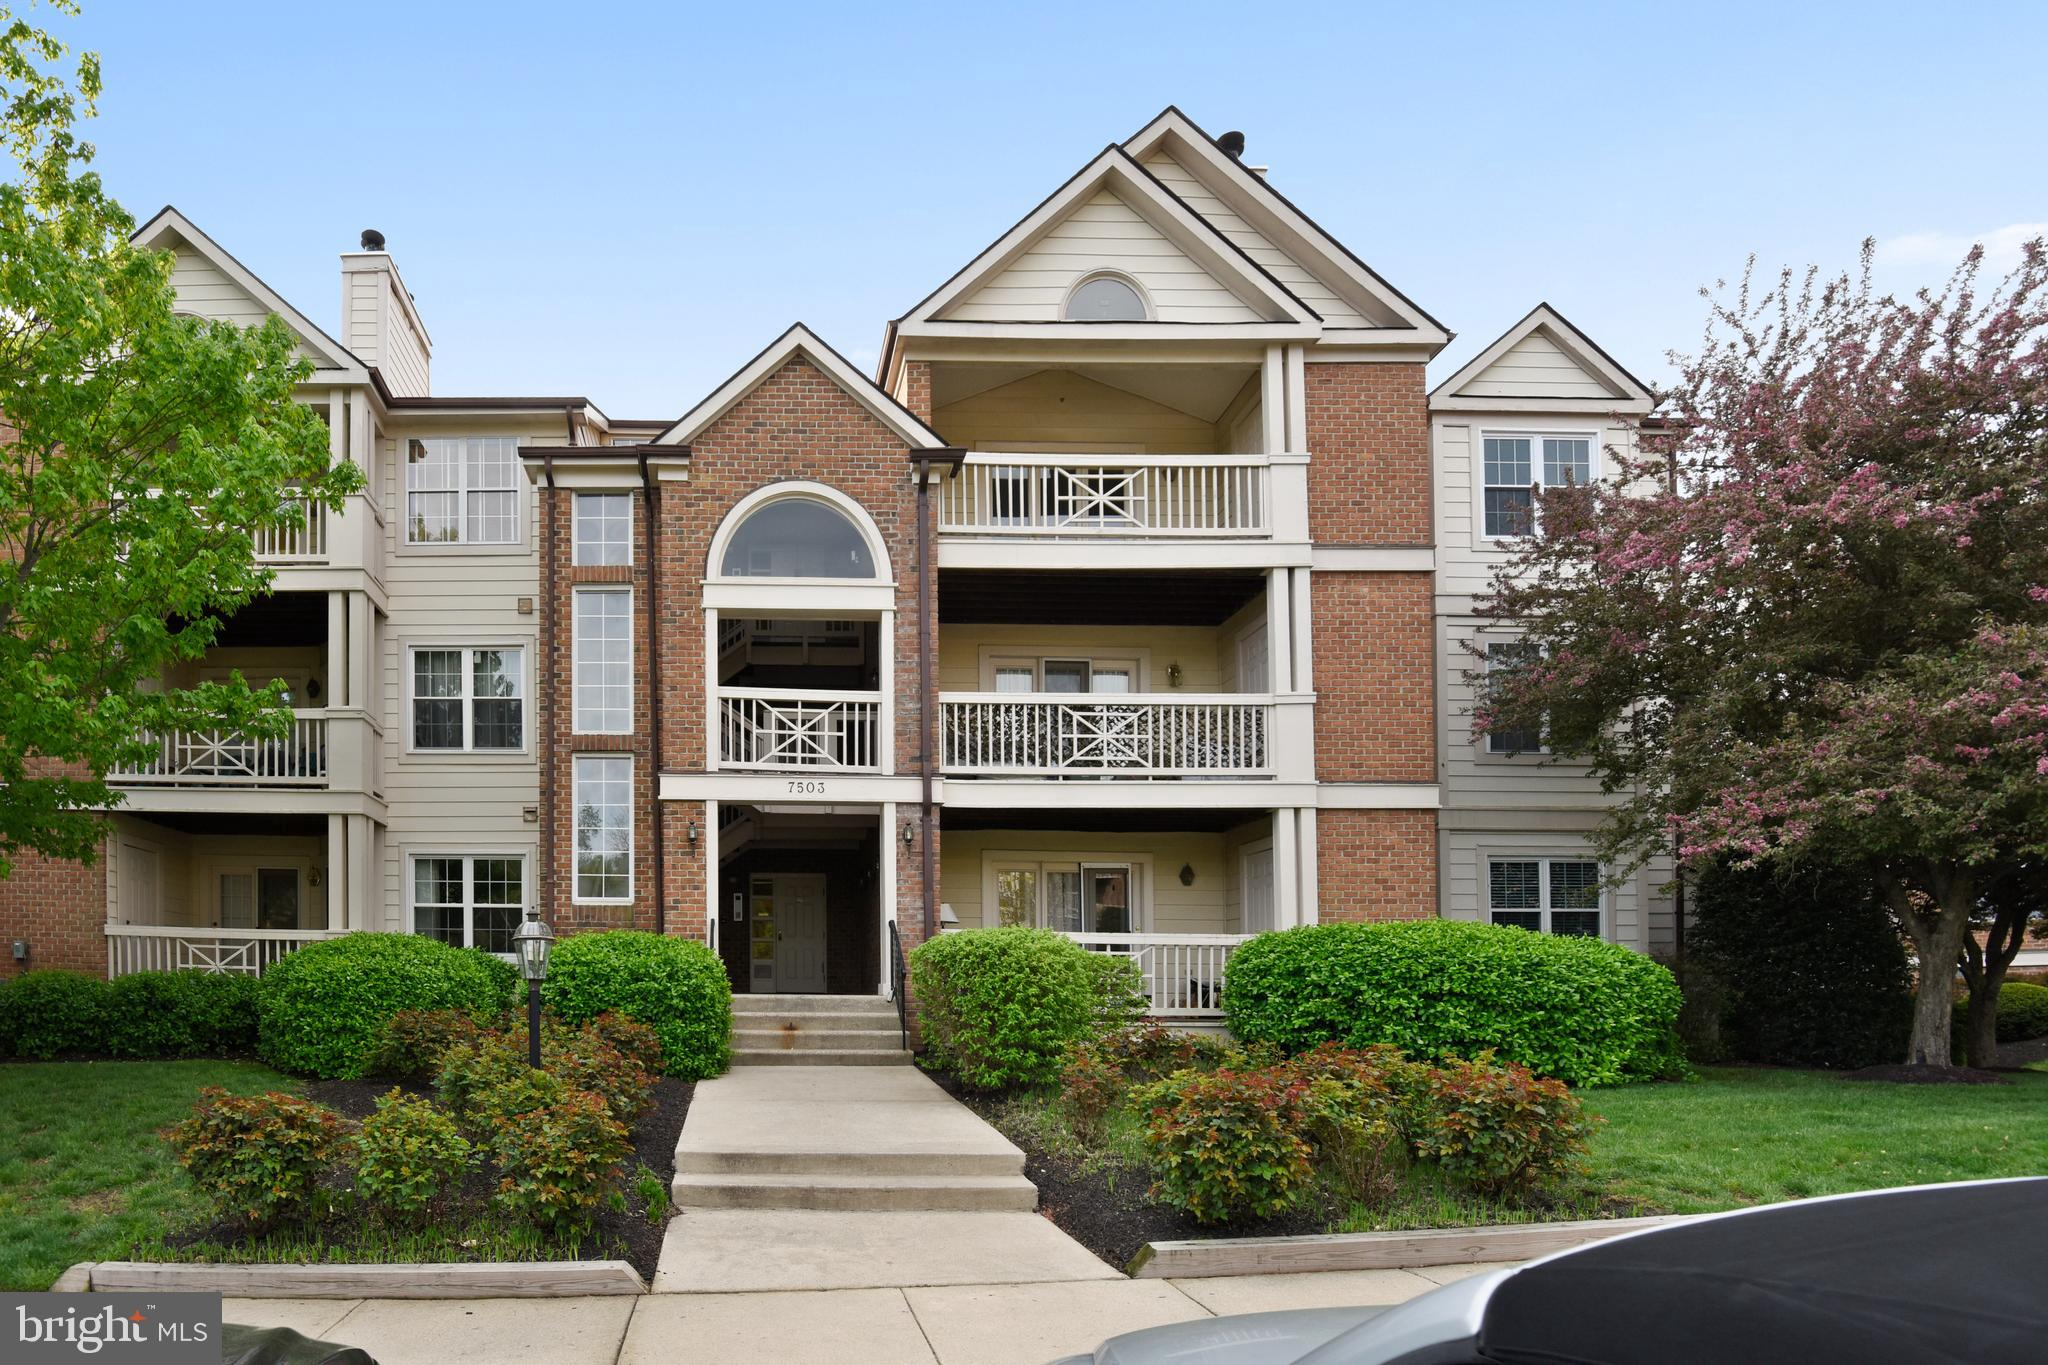 Spacious & well-maintained first floor 2-bedroom & 2-bathroom, Coventry model, within Stratford Place in Kingstowne. Upon entering this unit you will be greeted by expansive living / dining area that opens to the kitchen on one end and patio door to the balcony on the other.  The living room features a wood-burning fireplace; HDMI and cable wires are in place above to mount television, if desired.  The kitchen is large enough for an eat-in area and has a breakfast bar over-looking the living area.  The master bedroom suite includes dimmable recessed lighting and two cedar-lined closets with built-in organizers and full-length mirrored closet doors. The master bath features a garden-style tub, dual vanity and upgraded lighting. The balcony is accessible from both the living room and the second bedroom and has an additional storage closet.  Unit has assigned parking and the community has ample visitor parking for guests.  Conveniently located in the heart of Kingstowne, minutes from great shopping, dining, movies & Wegmans. Less than 10 miles to Old Town Alexandria, less than 5 miles to Ft Belvoir, & just 2 miles to Franconia Springfield Metro, with easy access to 395, 495 and 95. Access to all of the Kingstowne amenities are included.  About Kingstowne: Kingstowne is an urban community of over 5,300 homes located in Alexandria, Virginia, just 12 miles from the nation's capital.  Its location provides quick access to the Capital Beltway, Franconia-Springfield and Van Dorn Street Metro stations on Washington's Metrorail system.Tree lined streets with a variety of housing ranging from apartments to estate single family homes and a vibrant town center makes Kingstowne a great place to live and work.  Residents enjoy amenities including miles of walking trails, a beautiful lake, two outdoor swimming pools, tennis and volleyball courts, numerous tot lots, an aerobics studio and two state of the art fitness centers.  Every effort has been made to maintain much of its 1,200 